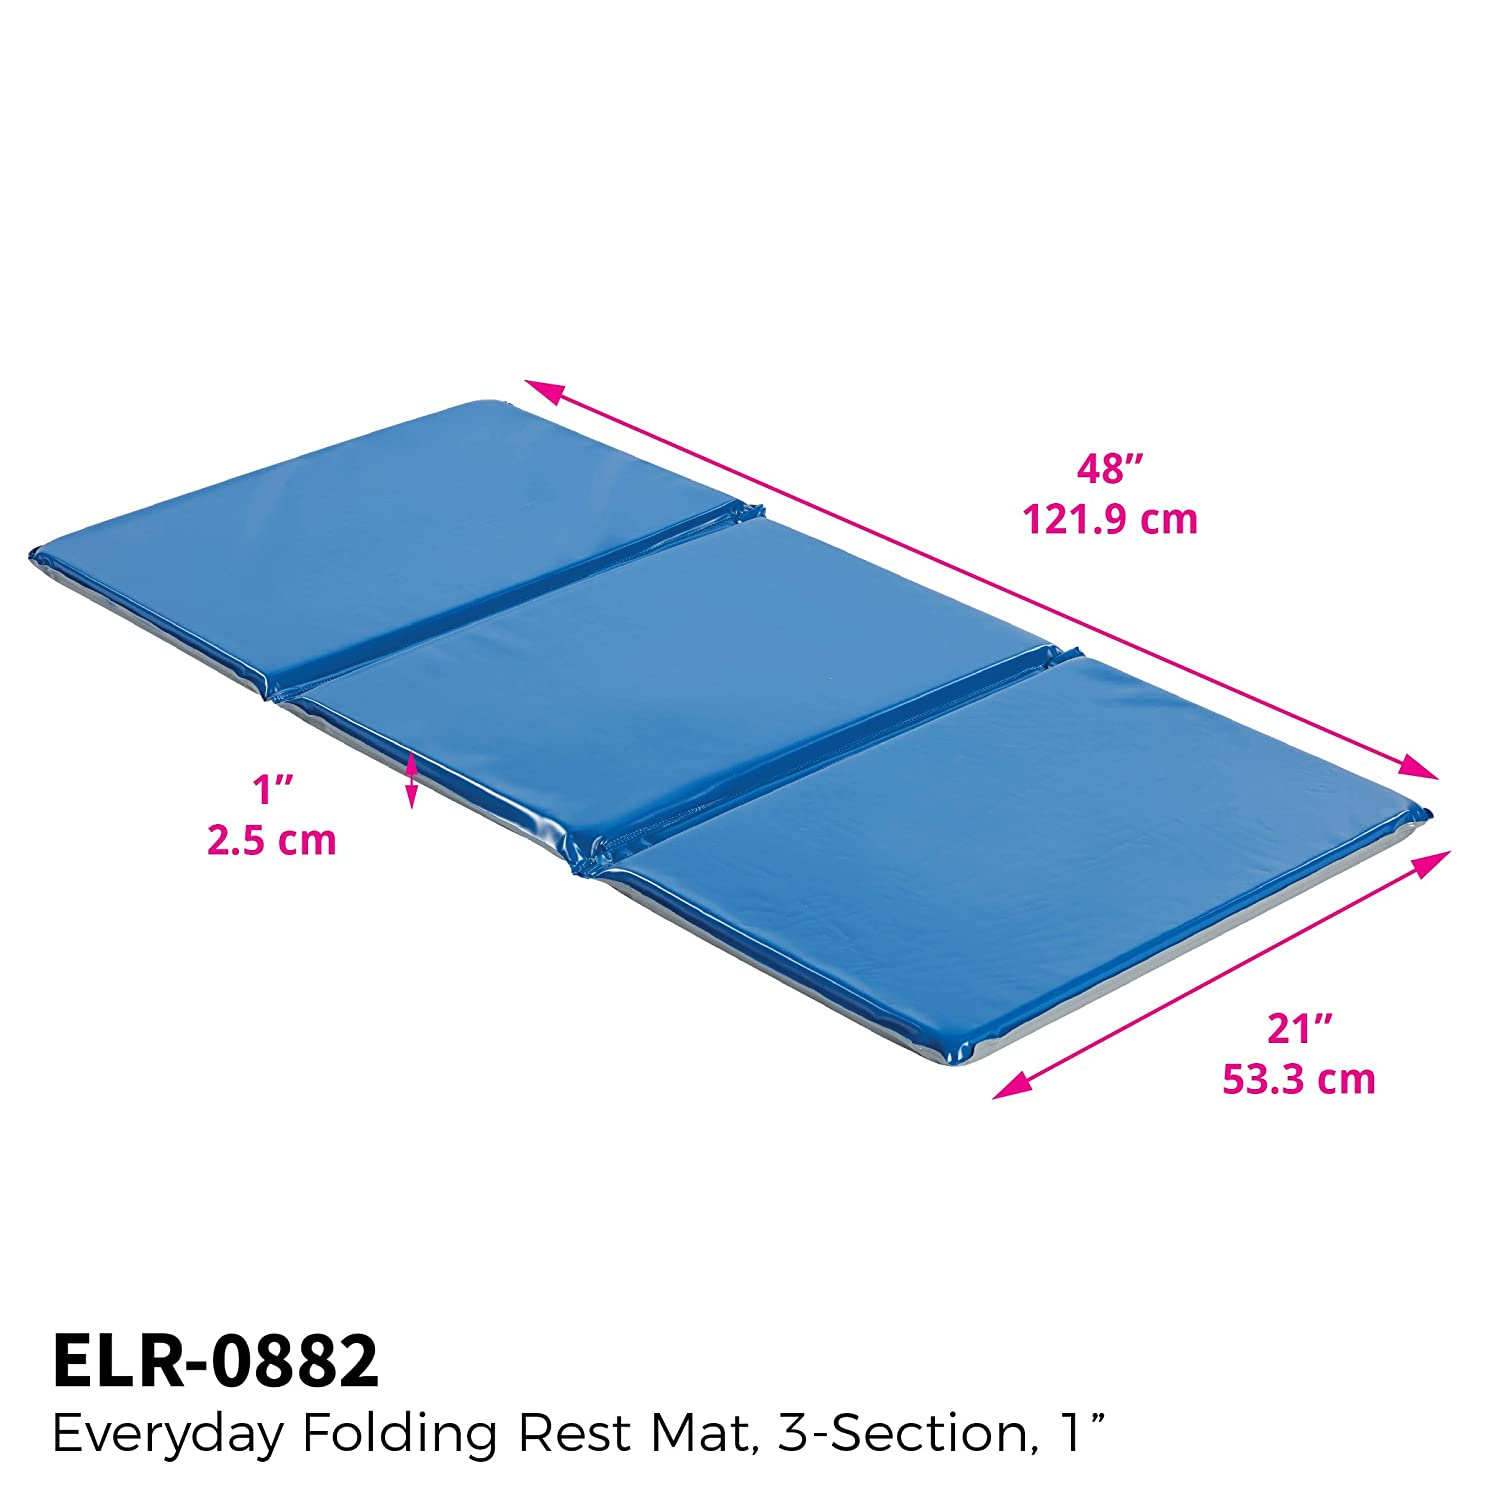 ECR4Kids Everyday 3-Fold Daycare Rest Mat, Folding Rest Mat, Sanitary Design, Low Maintenance, Certified and Safe, No Assembly Required, 1 Thick, 5-Pack, Blue and Grey